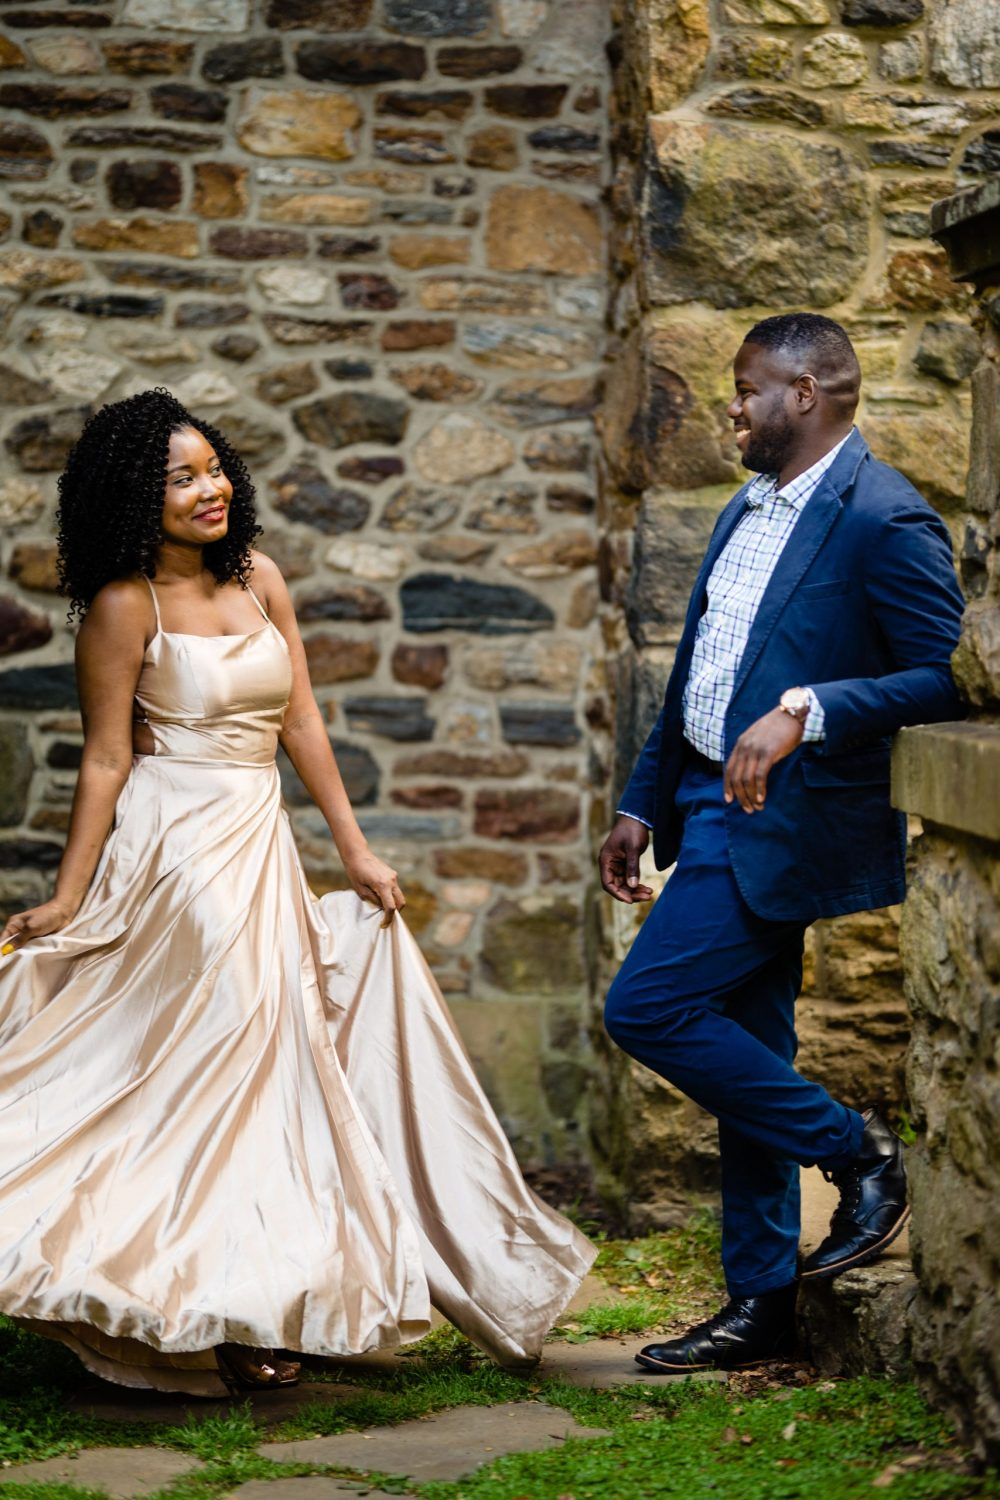 Stone wall and engaged couple twirling in dress